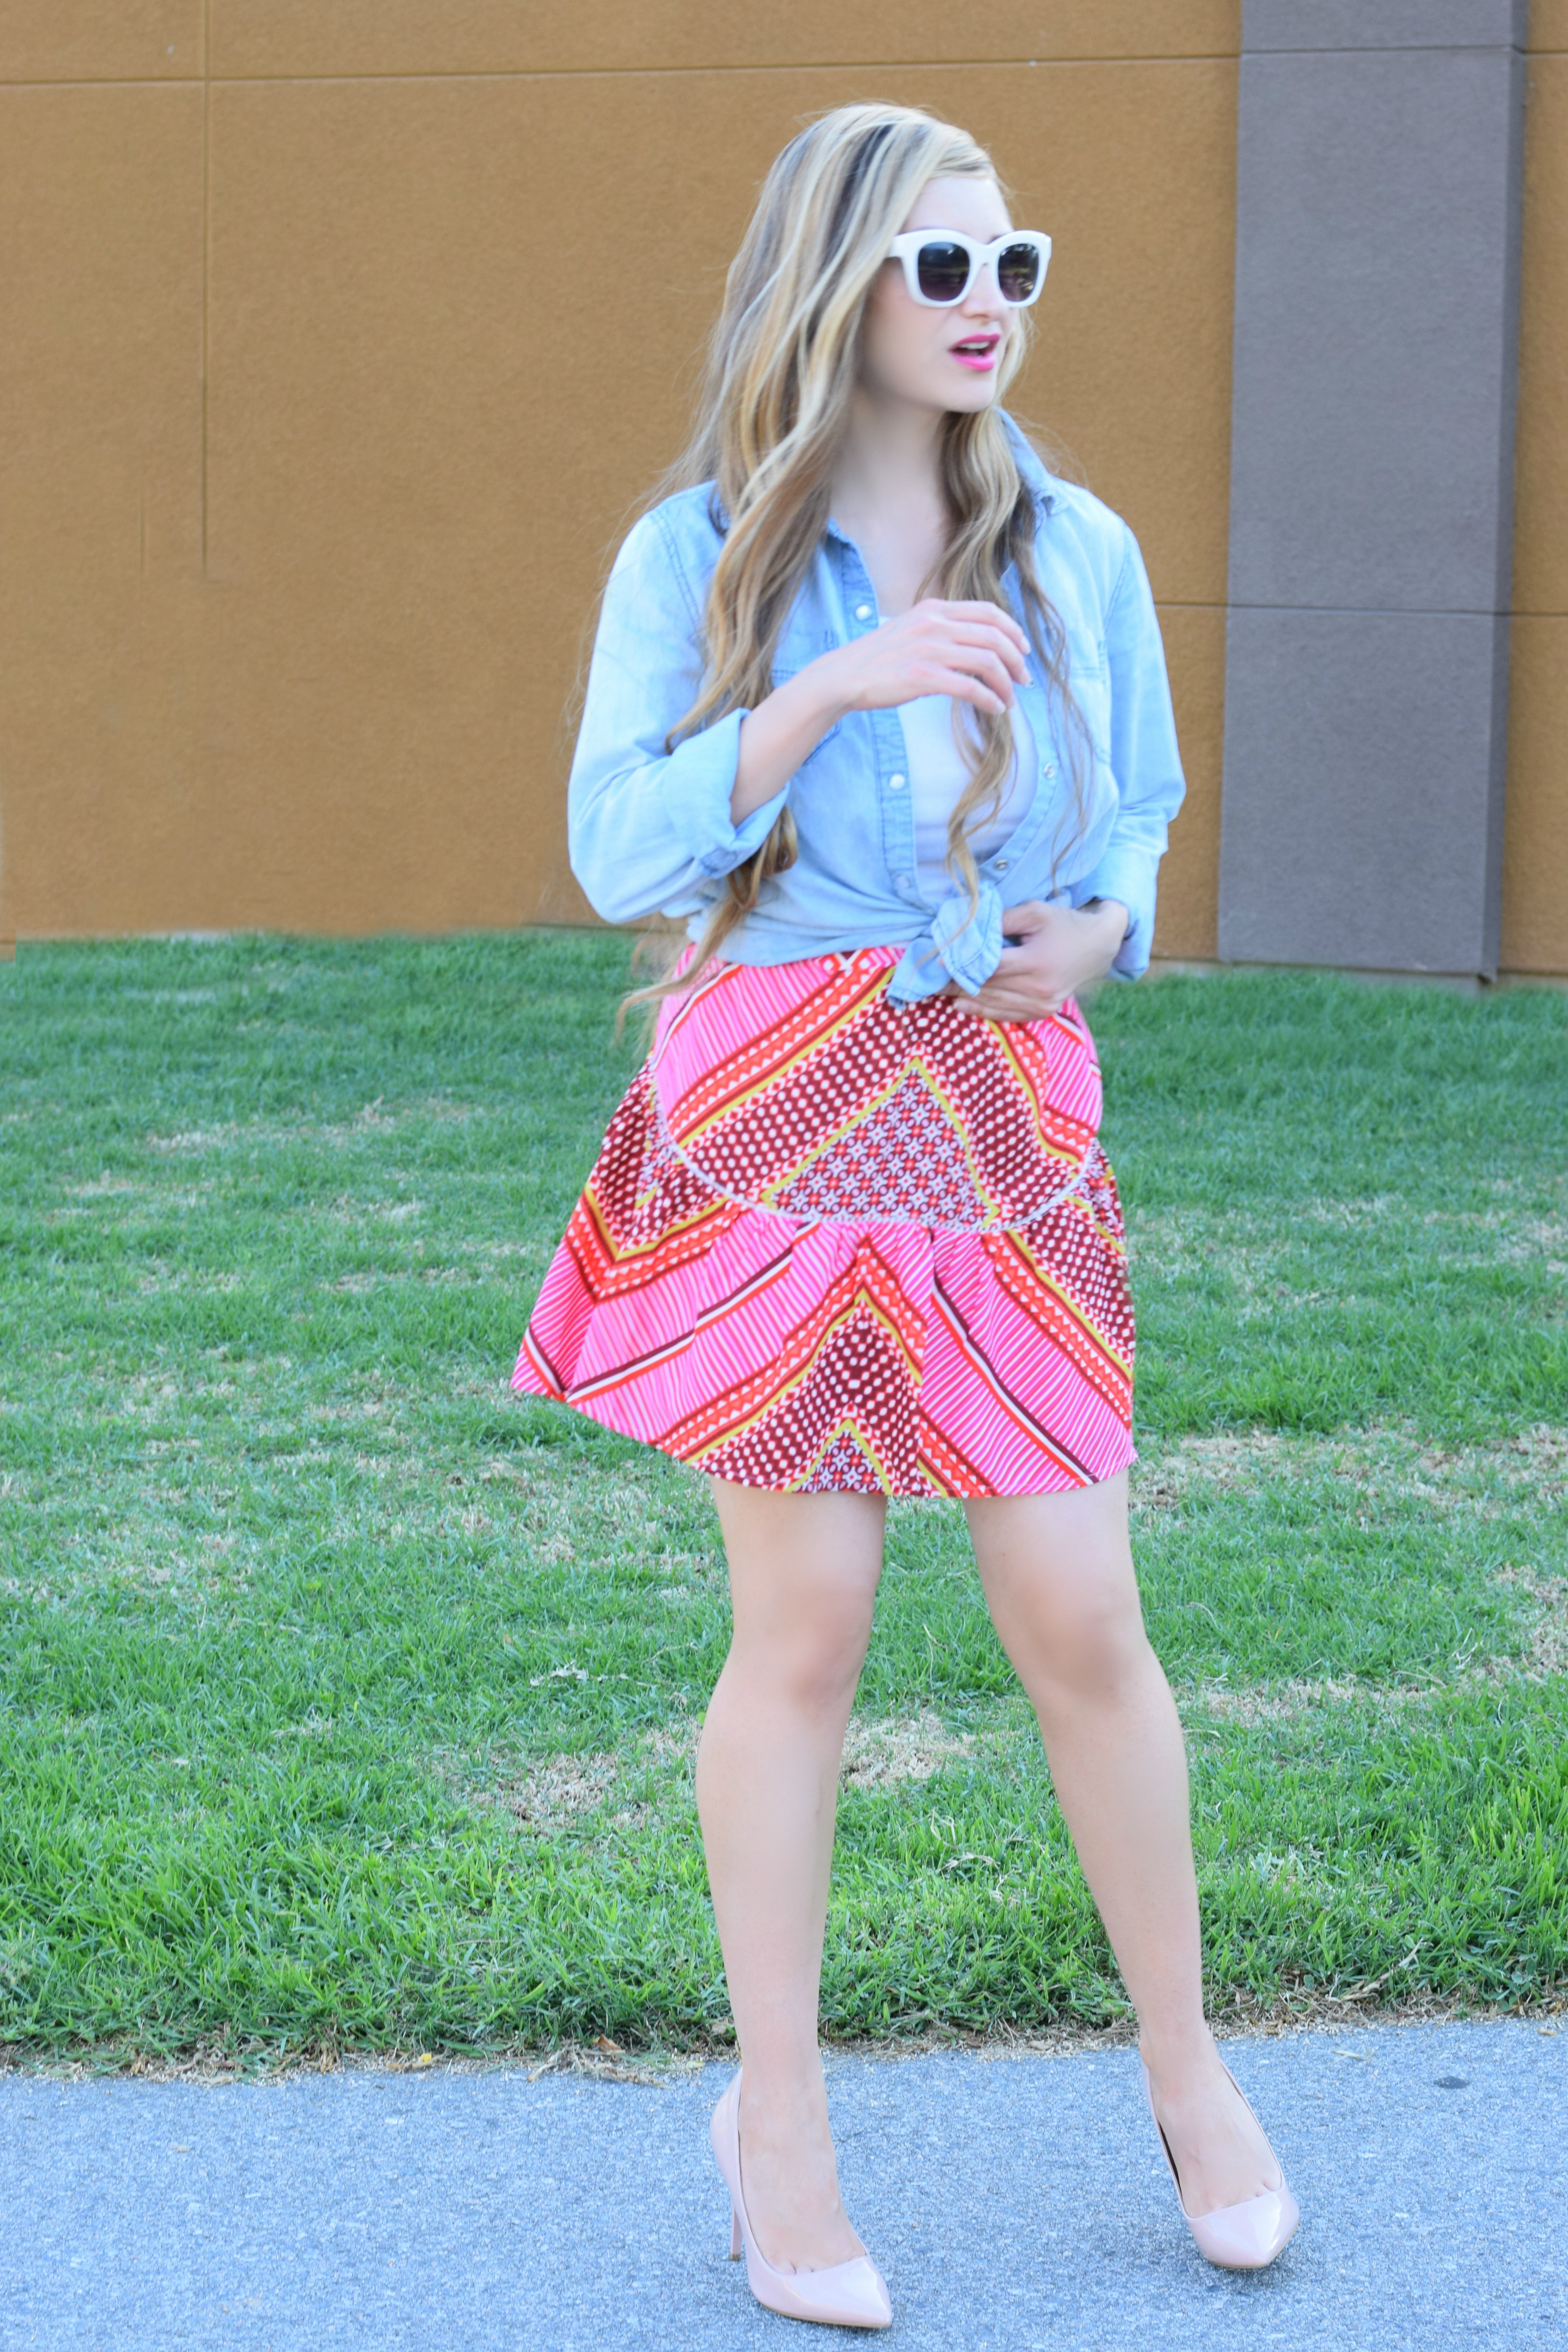 Summer Must Haves: 3 End Of Summer Fashion Must-Haves